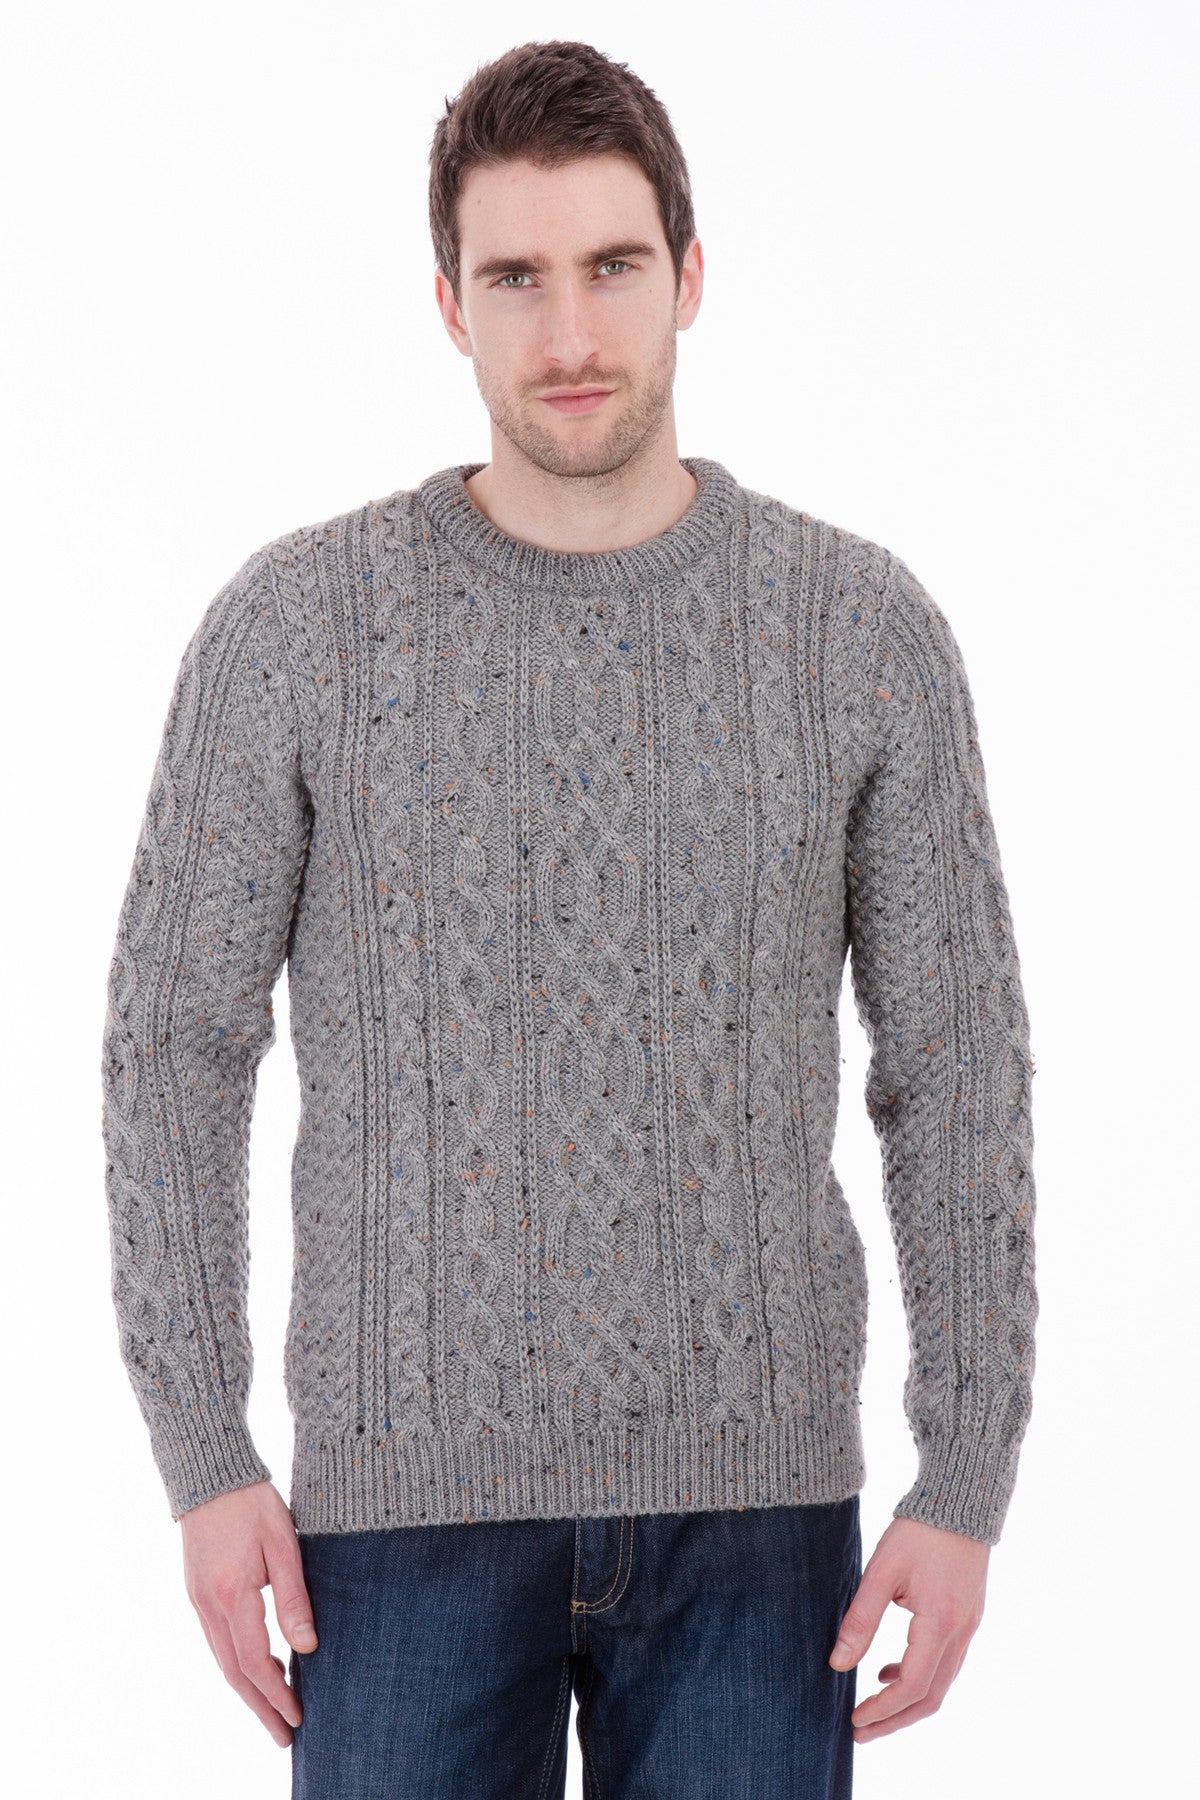 Thorpe - Dark Grey Nepp Jumper Sweater - Pure British Wool